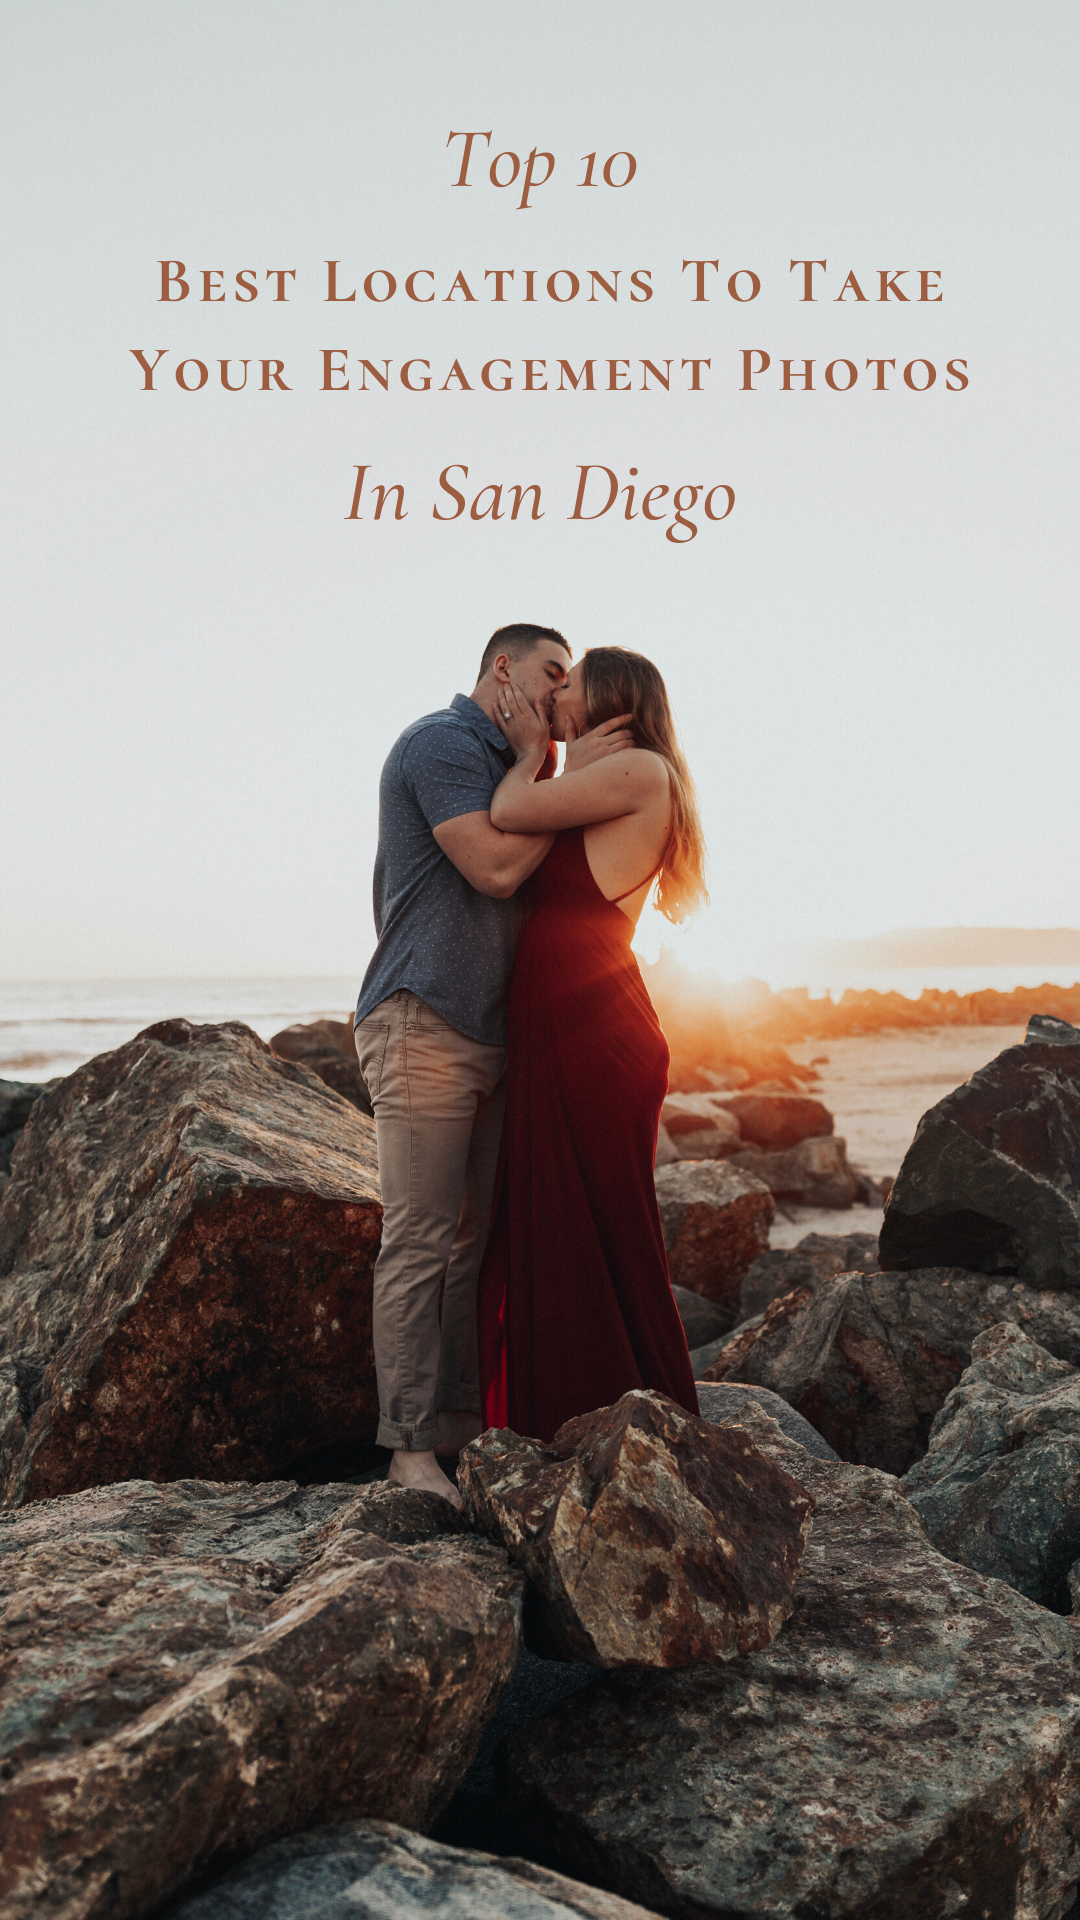 Check out the best locations in San Diego to take your engagement photos! #engagementphotos #engagementphotography #engagementphotoshoot #engaged #sandiegowedding #sandiegocalifornia #coupleshoot #engagementoutfits #couplesoutfit #beachpictures #sandiegobeaches #enagementring #weddingring #weddinginspiration #photographyideas